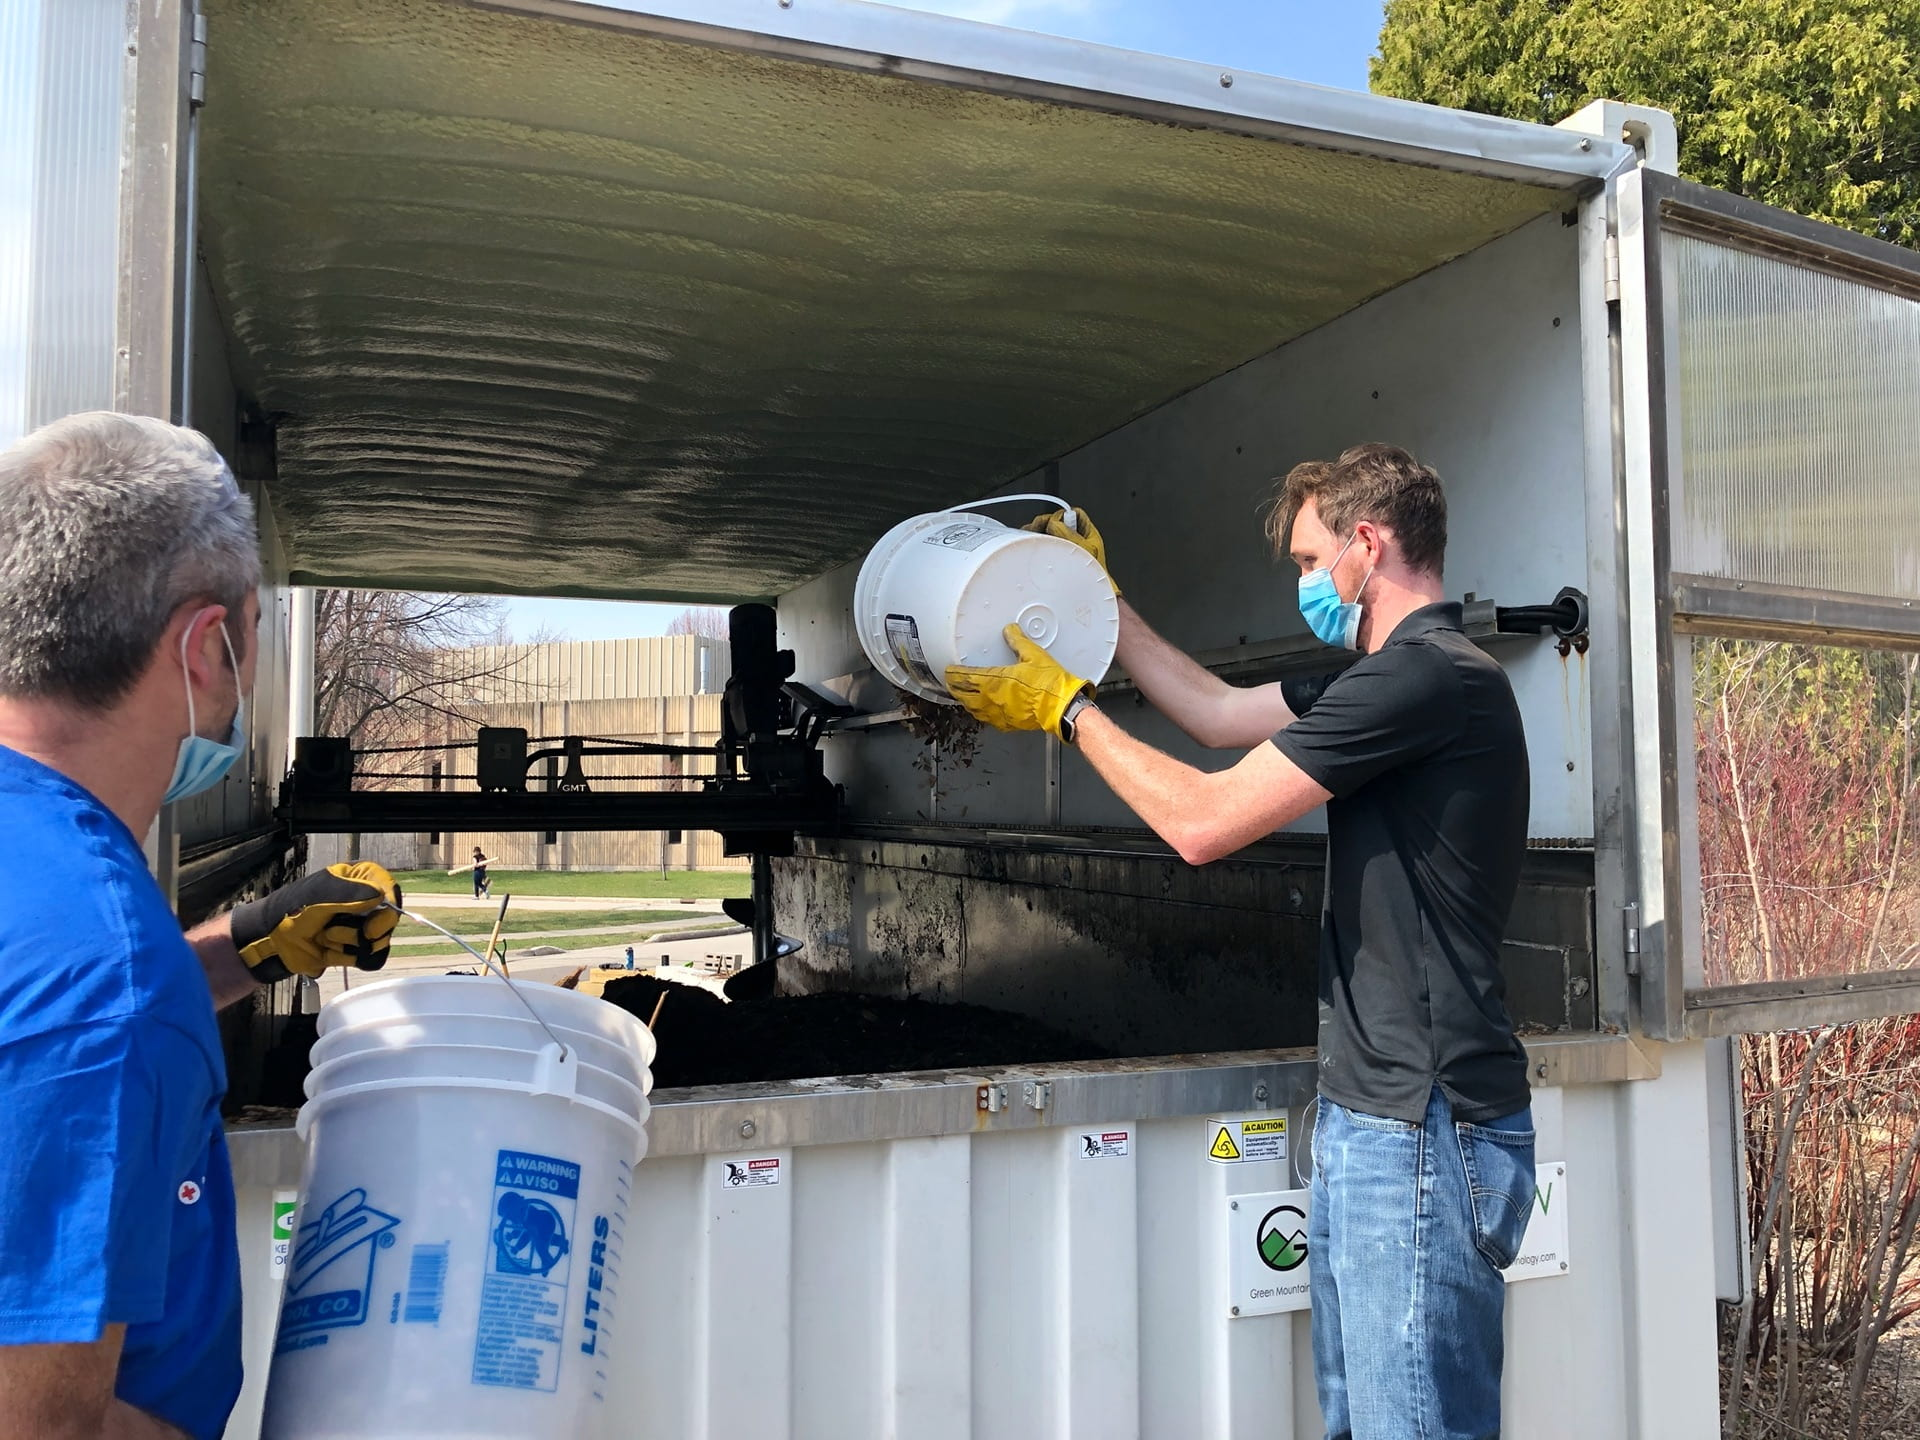 Filling the composter